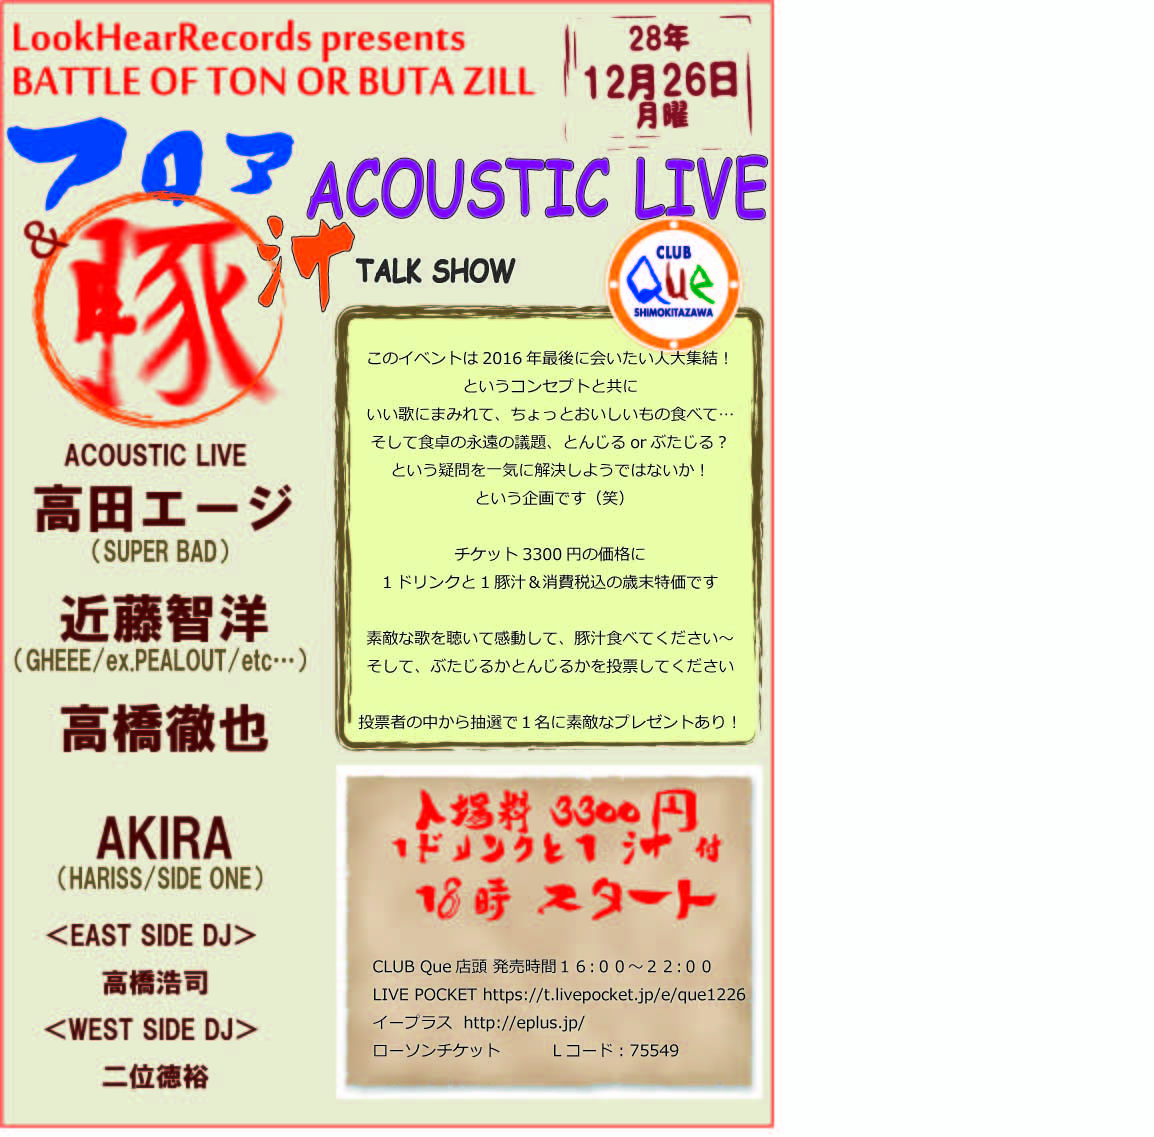 """LookHearRecords presents BATTLE OF TON OR BUTA ZILL ~フロアACOUSTIC LIVE&豚汁TALK SHOW~"""